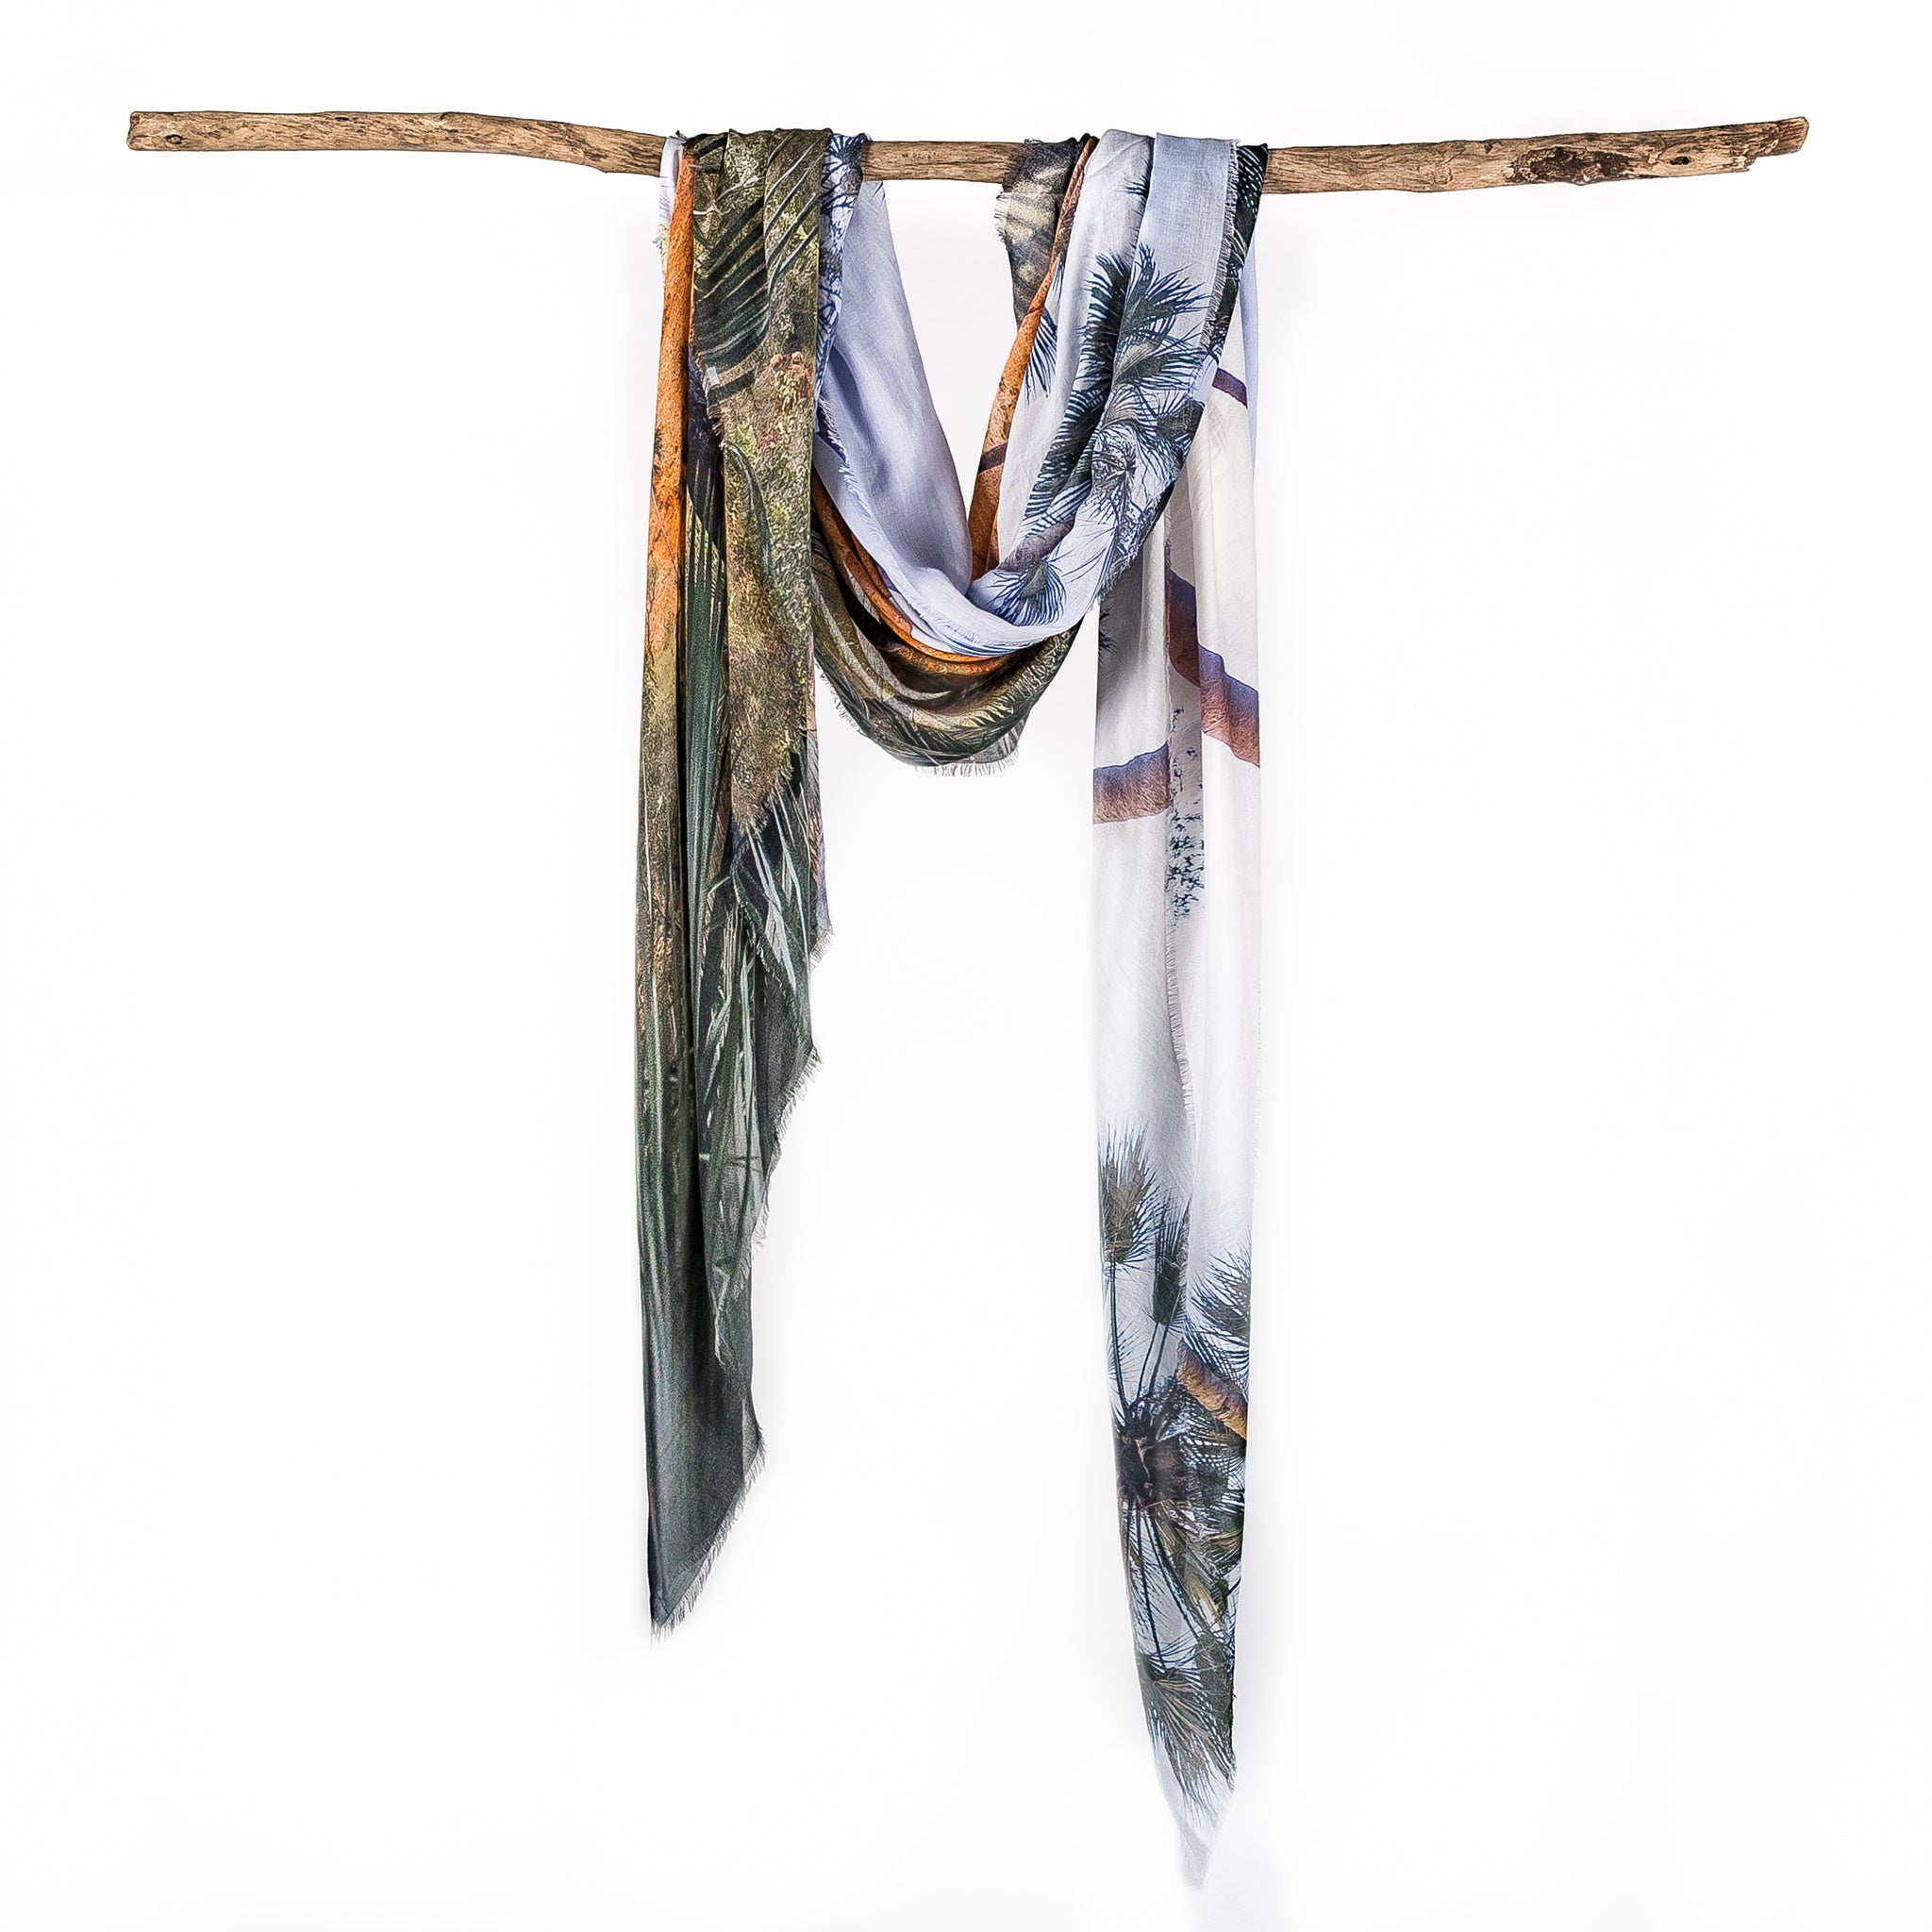 Oasis Scarf (Bungles Bungles) / 2 LEFT IN STOCK